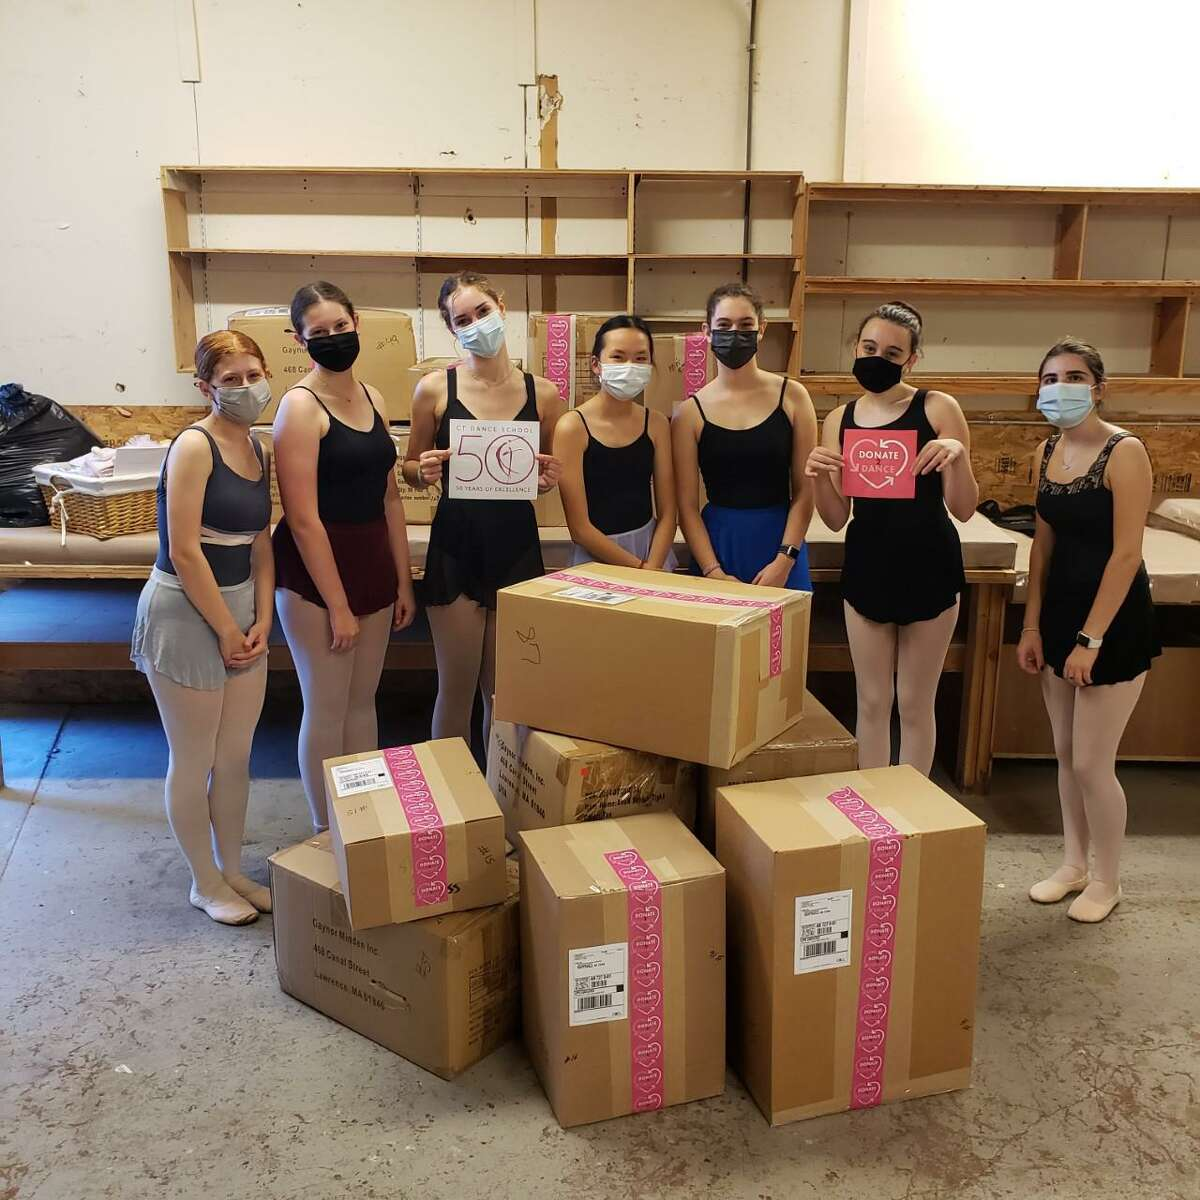 Teen ballet dancers from the Connecticut Dance School, CDS, and teens from the non-profit organization charity, Donate2Dance, recently partnered in the summer of 2021, to bring joy to other young dancers around the world, who were in need of dancewear.